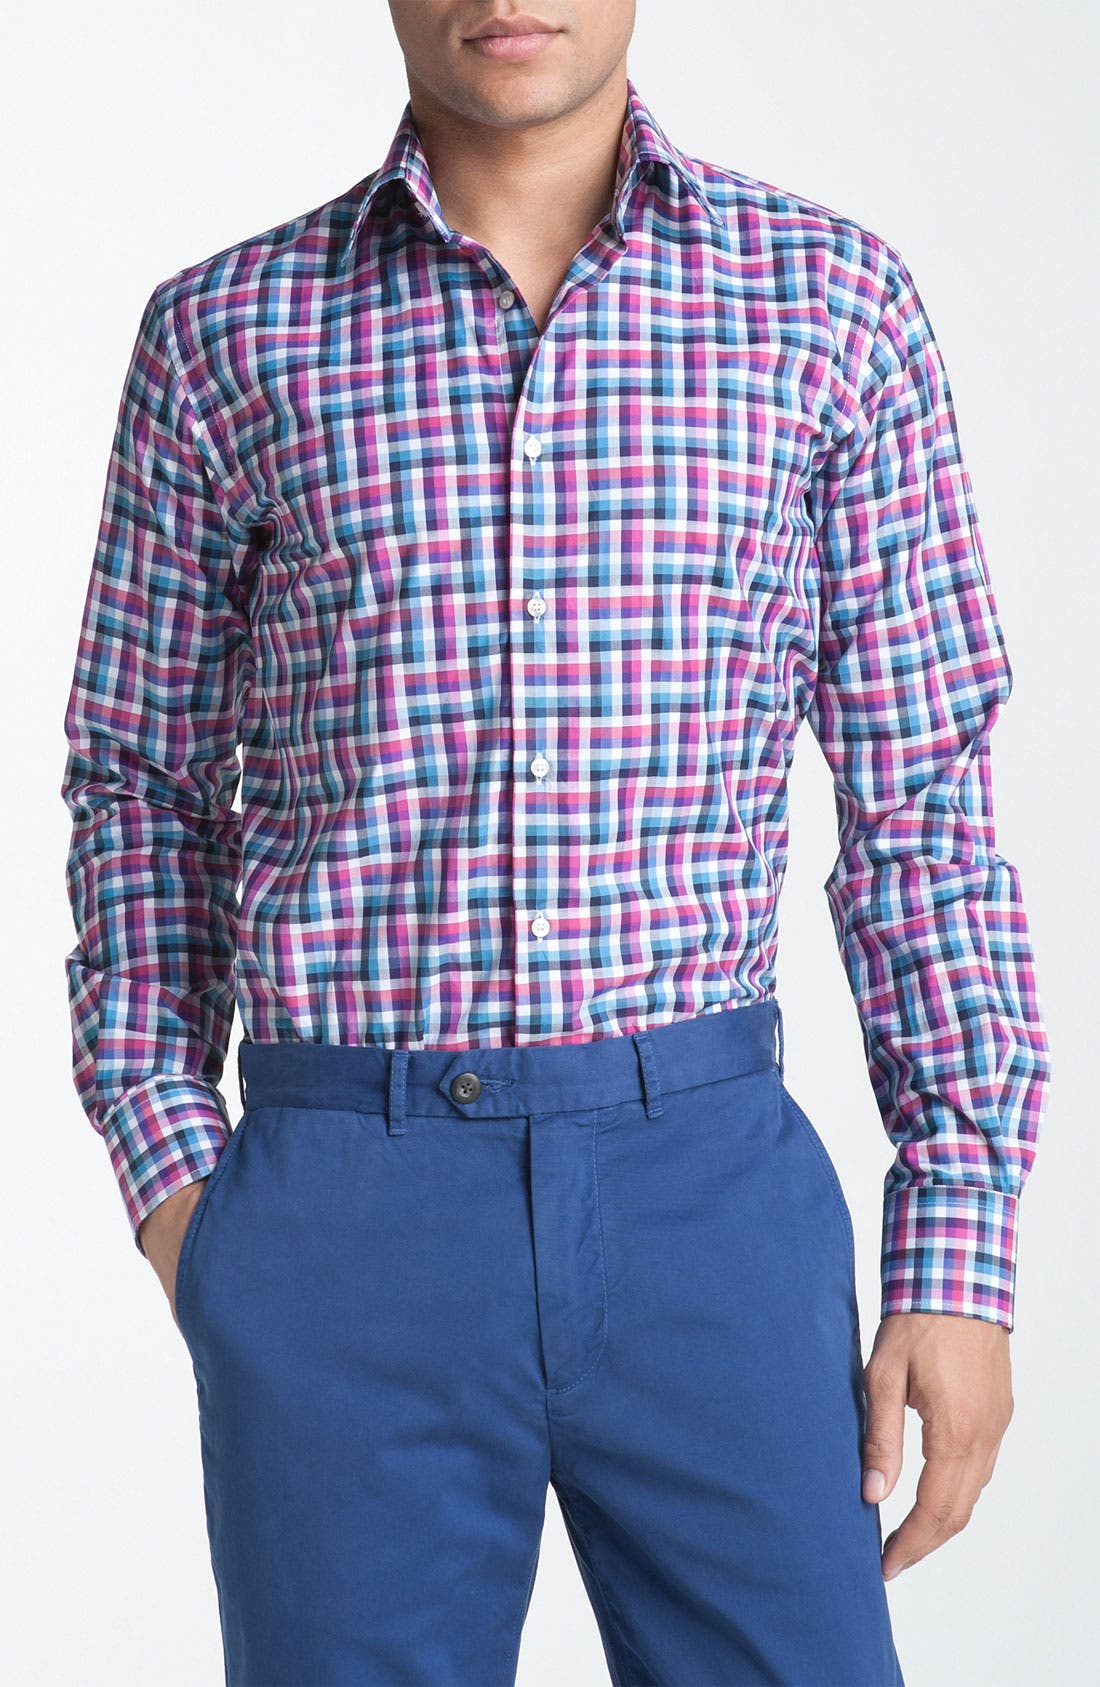 Main Image - Etro Check Plaid Woven Dress Shirt